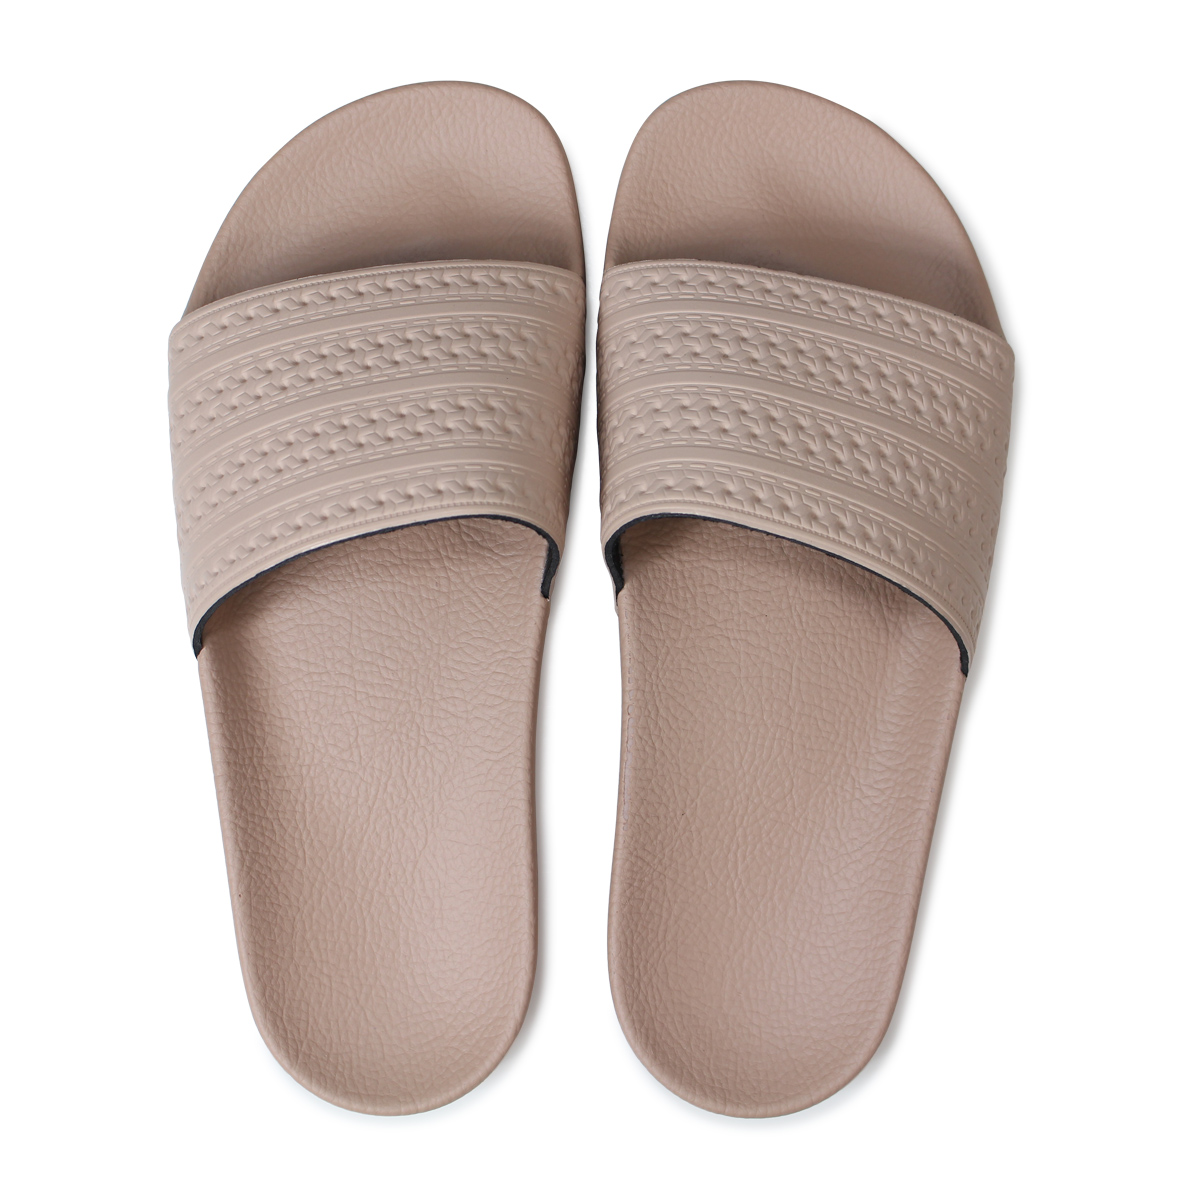 adidas Originals WOMENS ADILETTE SLIDES アディダスアディレッタレディースサンダルシャワーサンダル CQ2235  pink beige originals  load planned Shinnyu load in ... be6da49af3